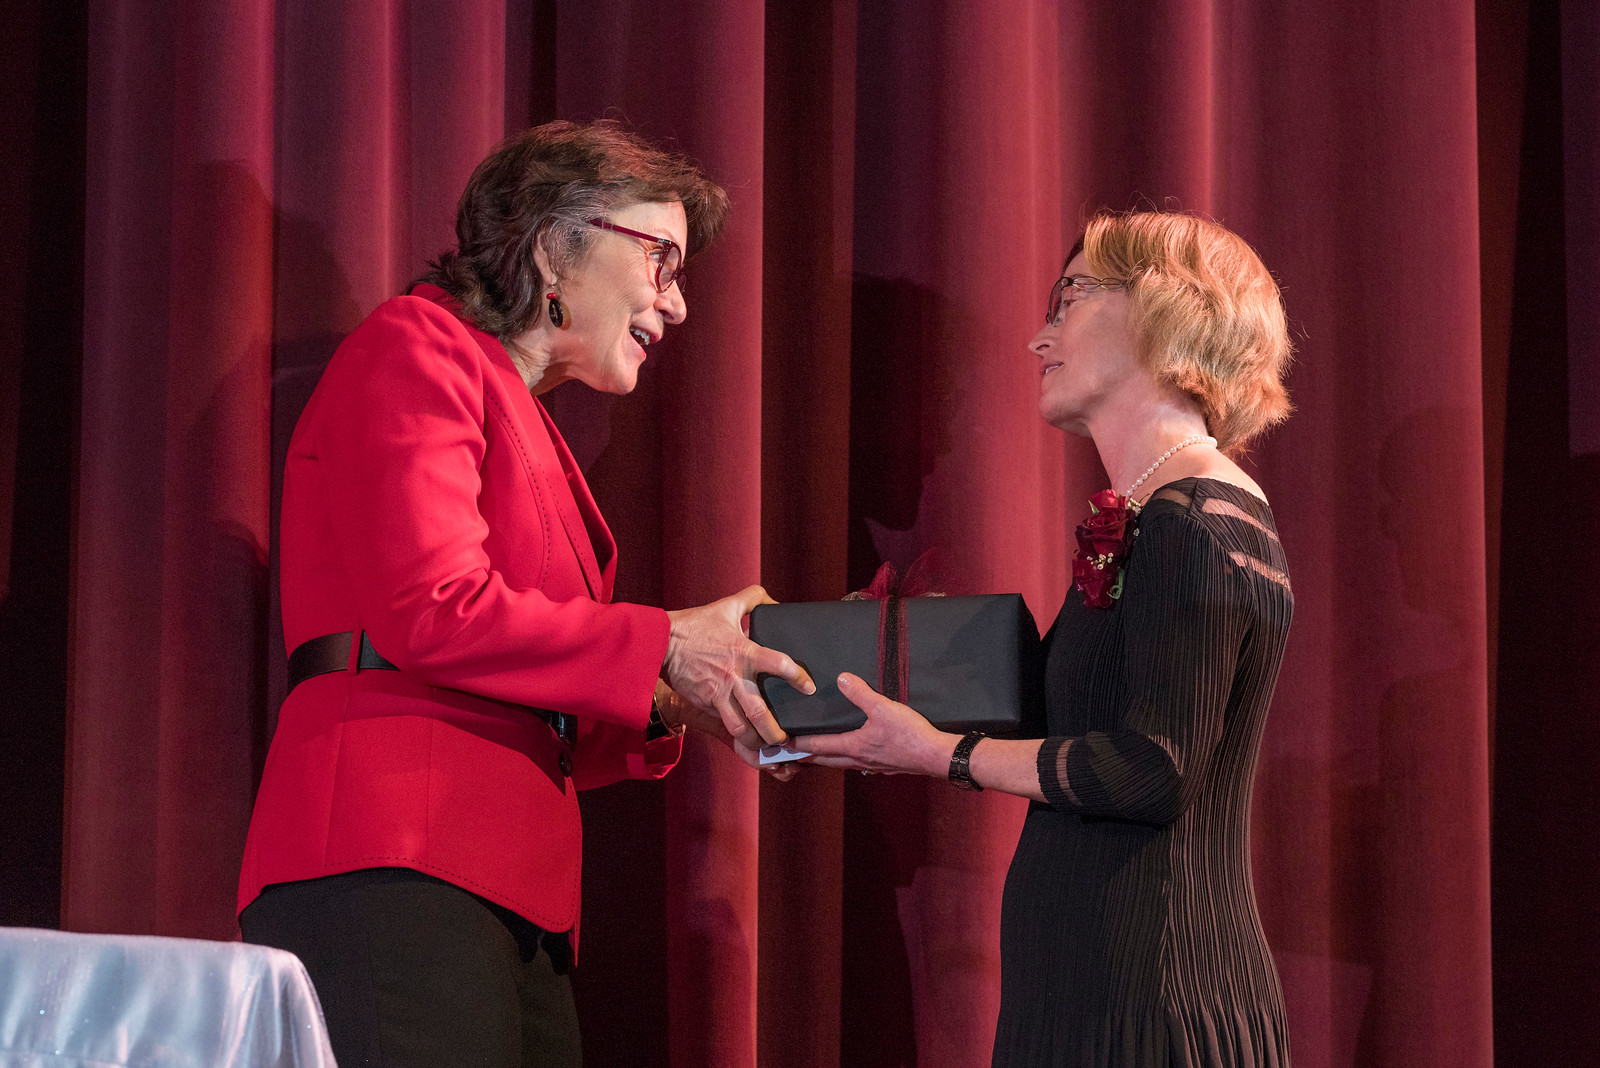 President Gayle Hutchinson (left) thanks Distinguished Alumni Jenelle Ball (right) as guests and honorees during the Distinguished Alumni Dinner on Friday, March 24, 2017 in Chico, Calif. (Jason Halley/University Photographer)